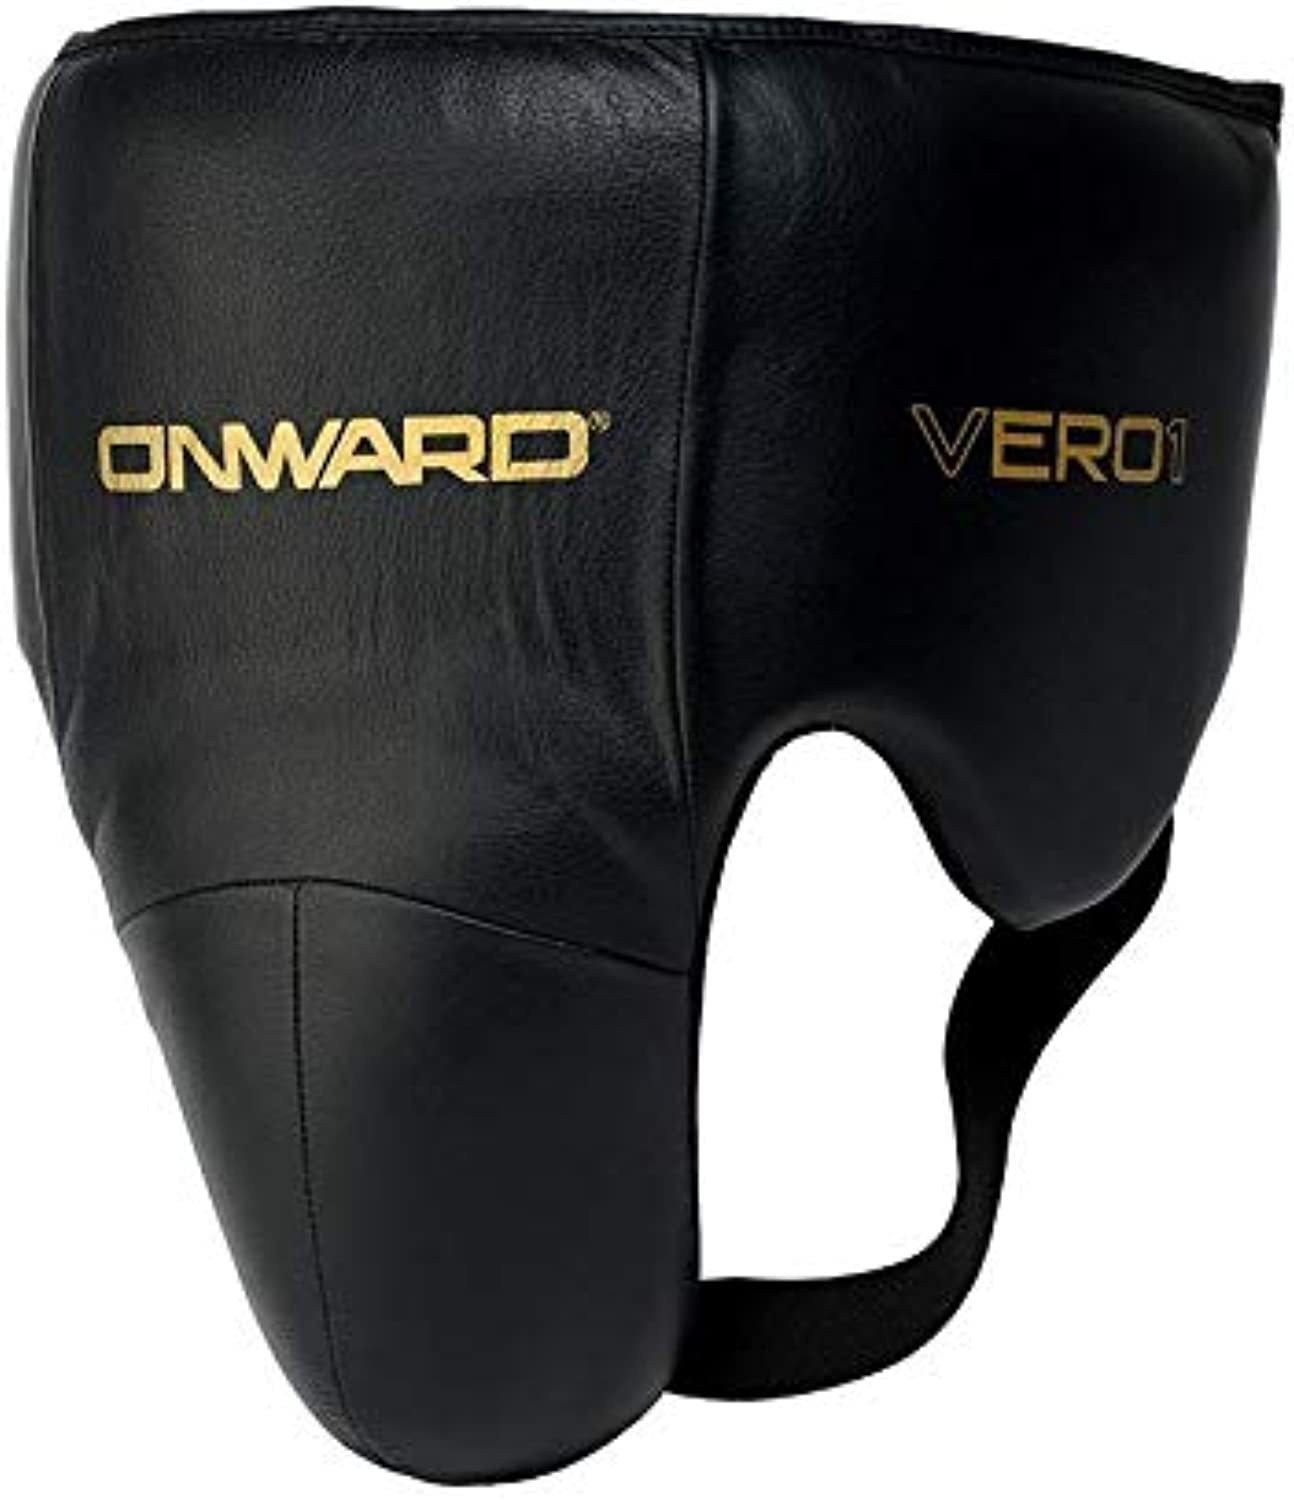 Onward No Foul Guard - Leather Professional Groin Guard - Reinforced Cup with Lace Closure System